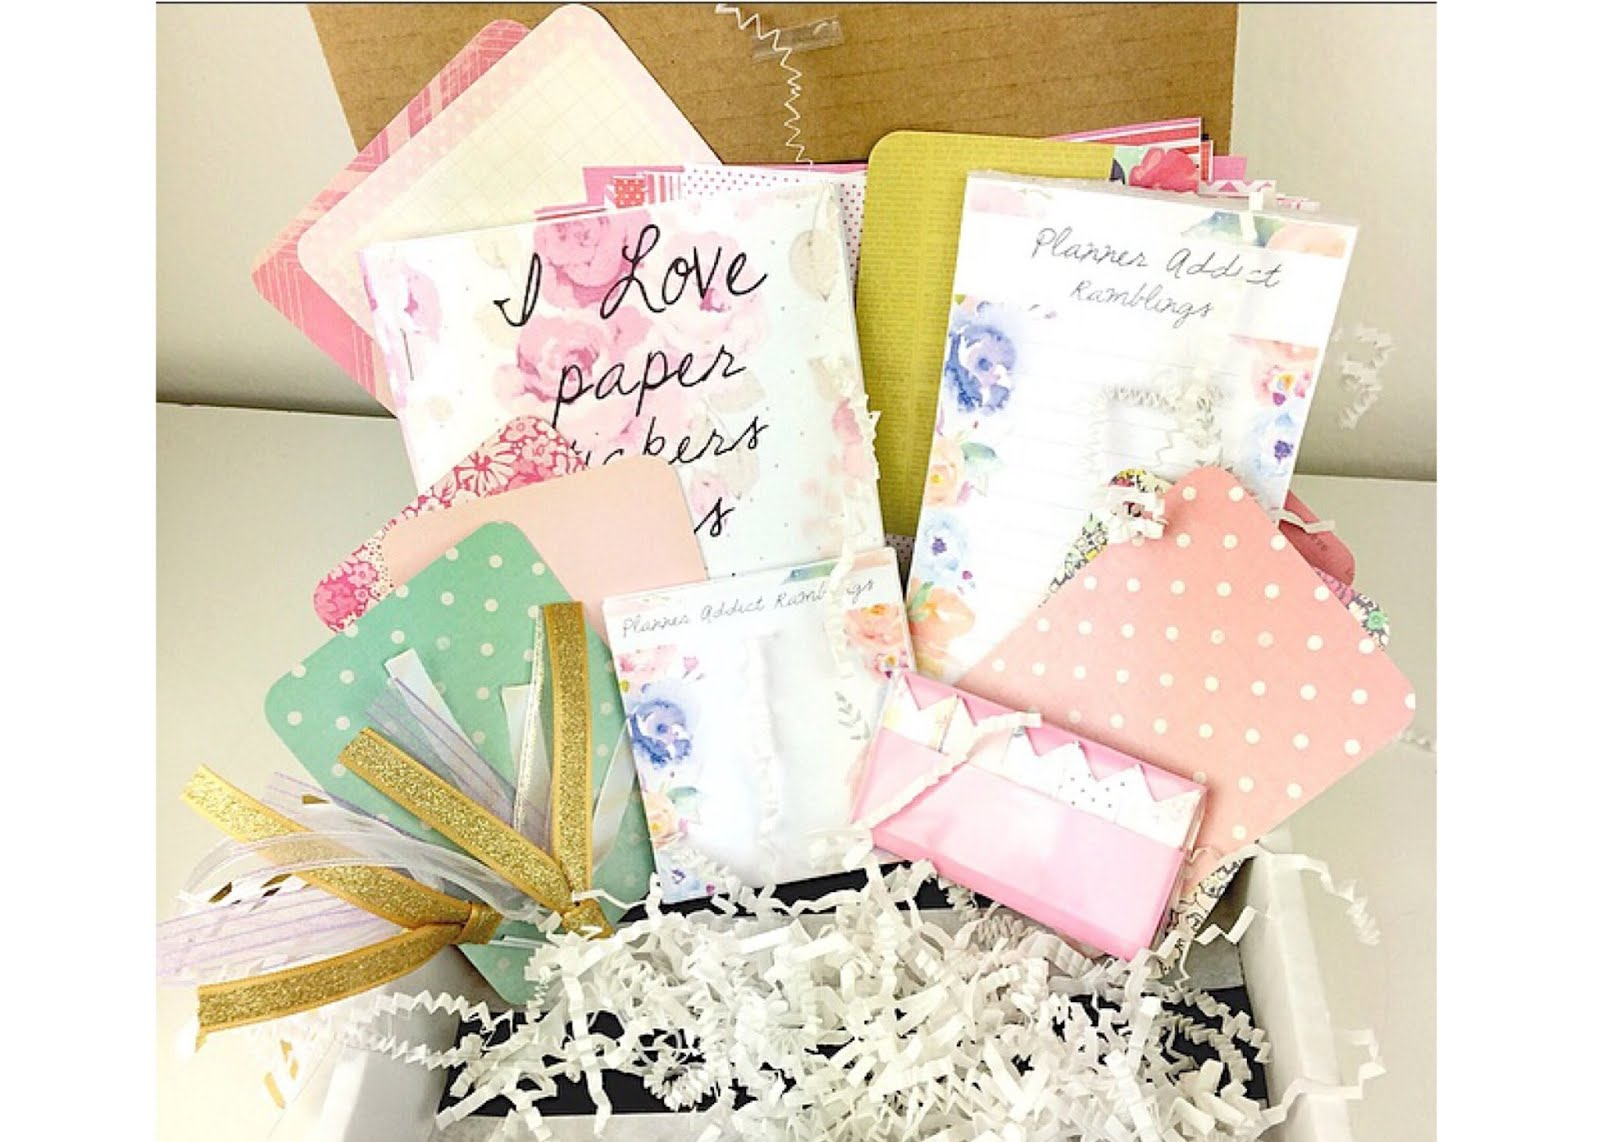 Sign up for the Planner Addict Box!